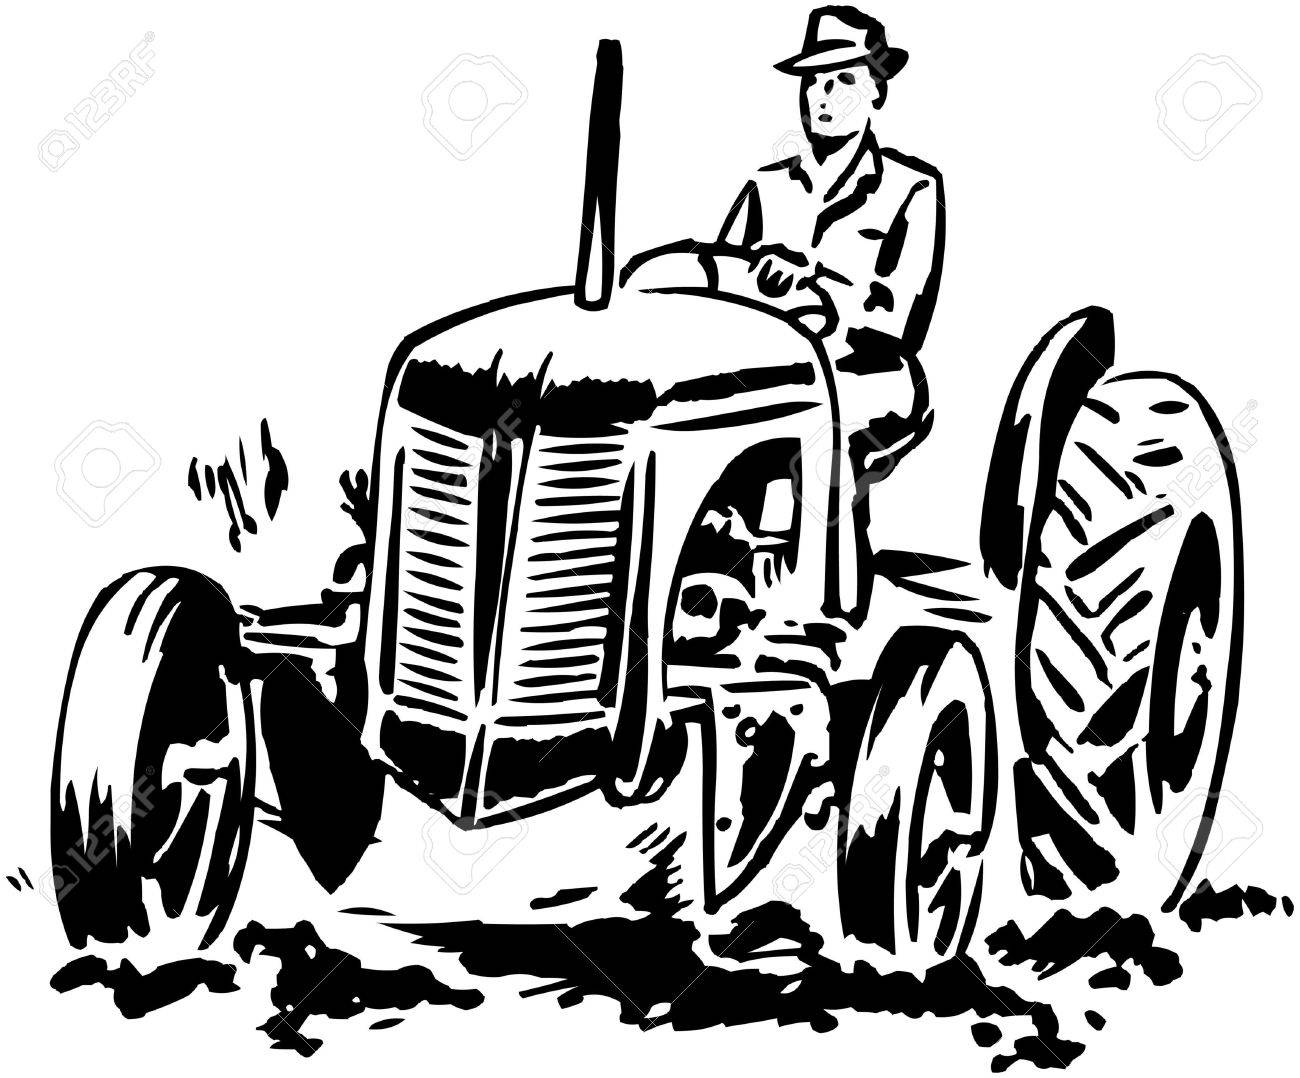 Tractor 2 - 28346406